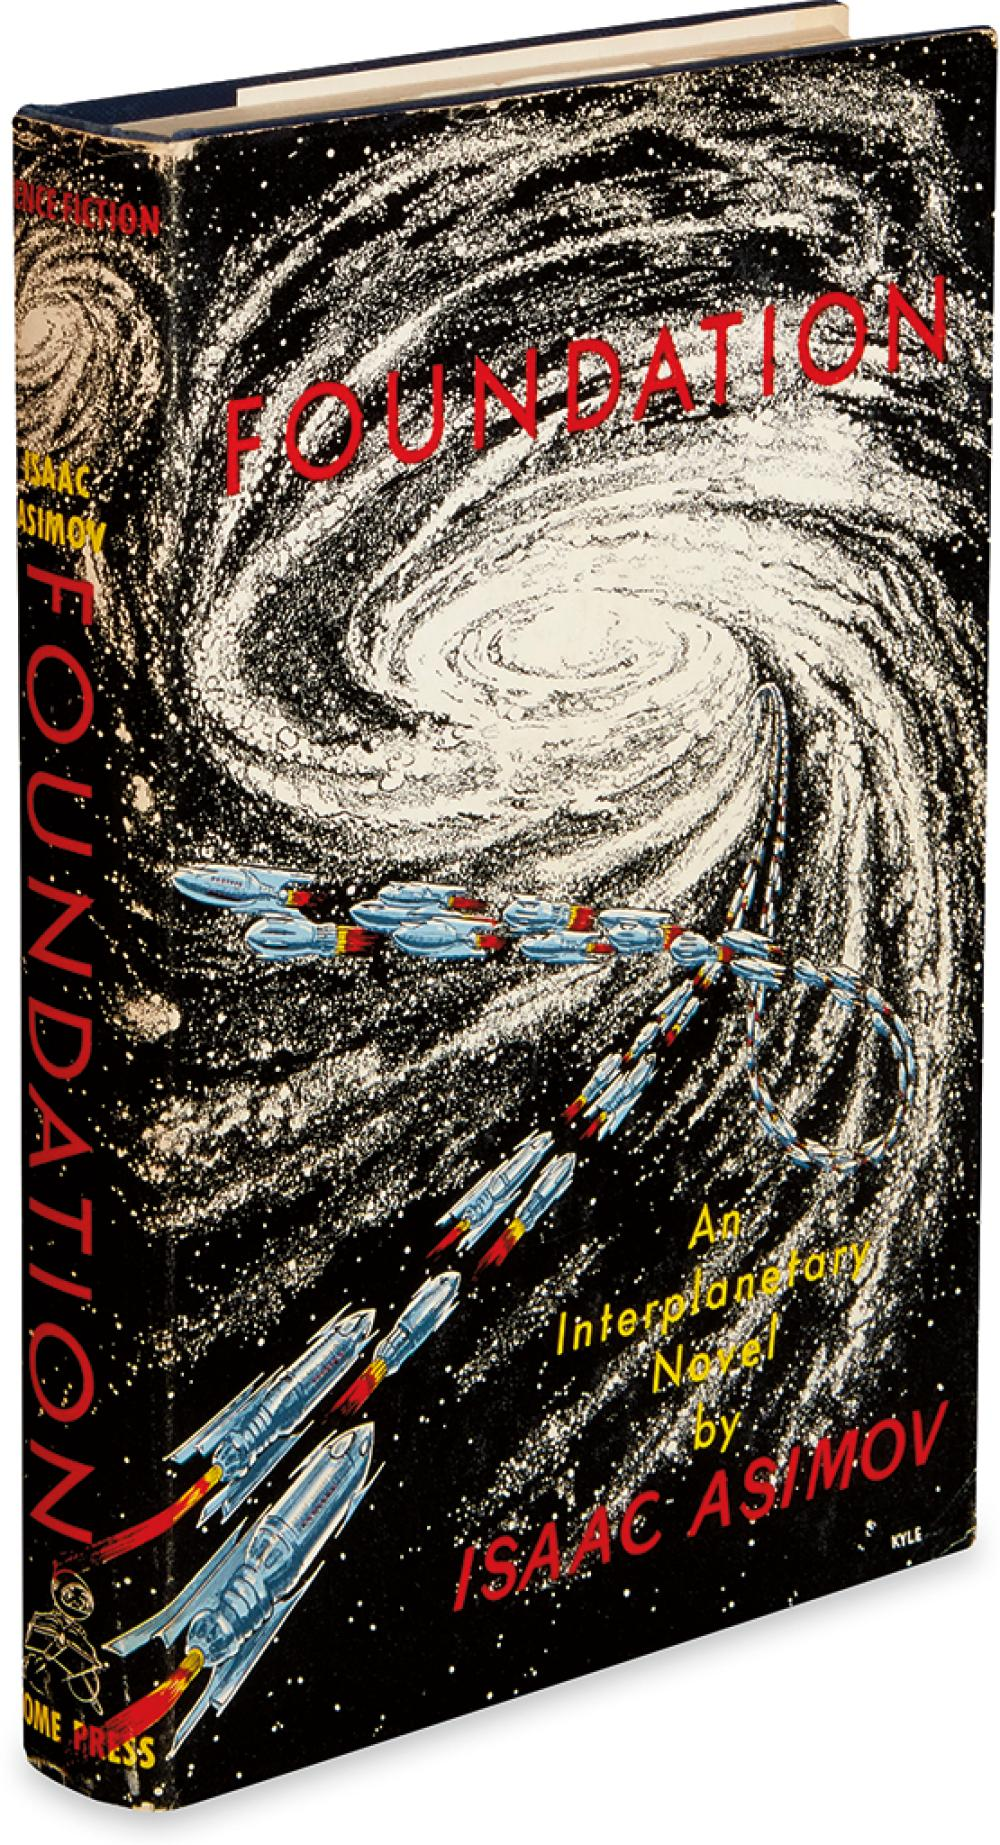 ASIMOV, ISAAC. Foundation Trilogy. Foundation * Foundation and Empire * Second Foundation.